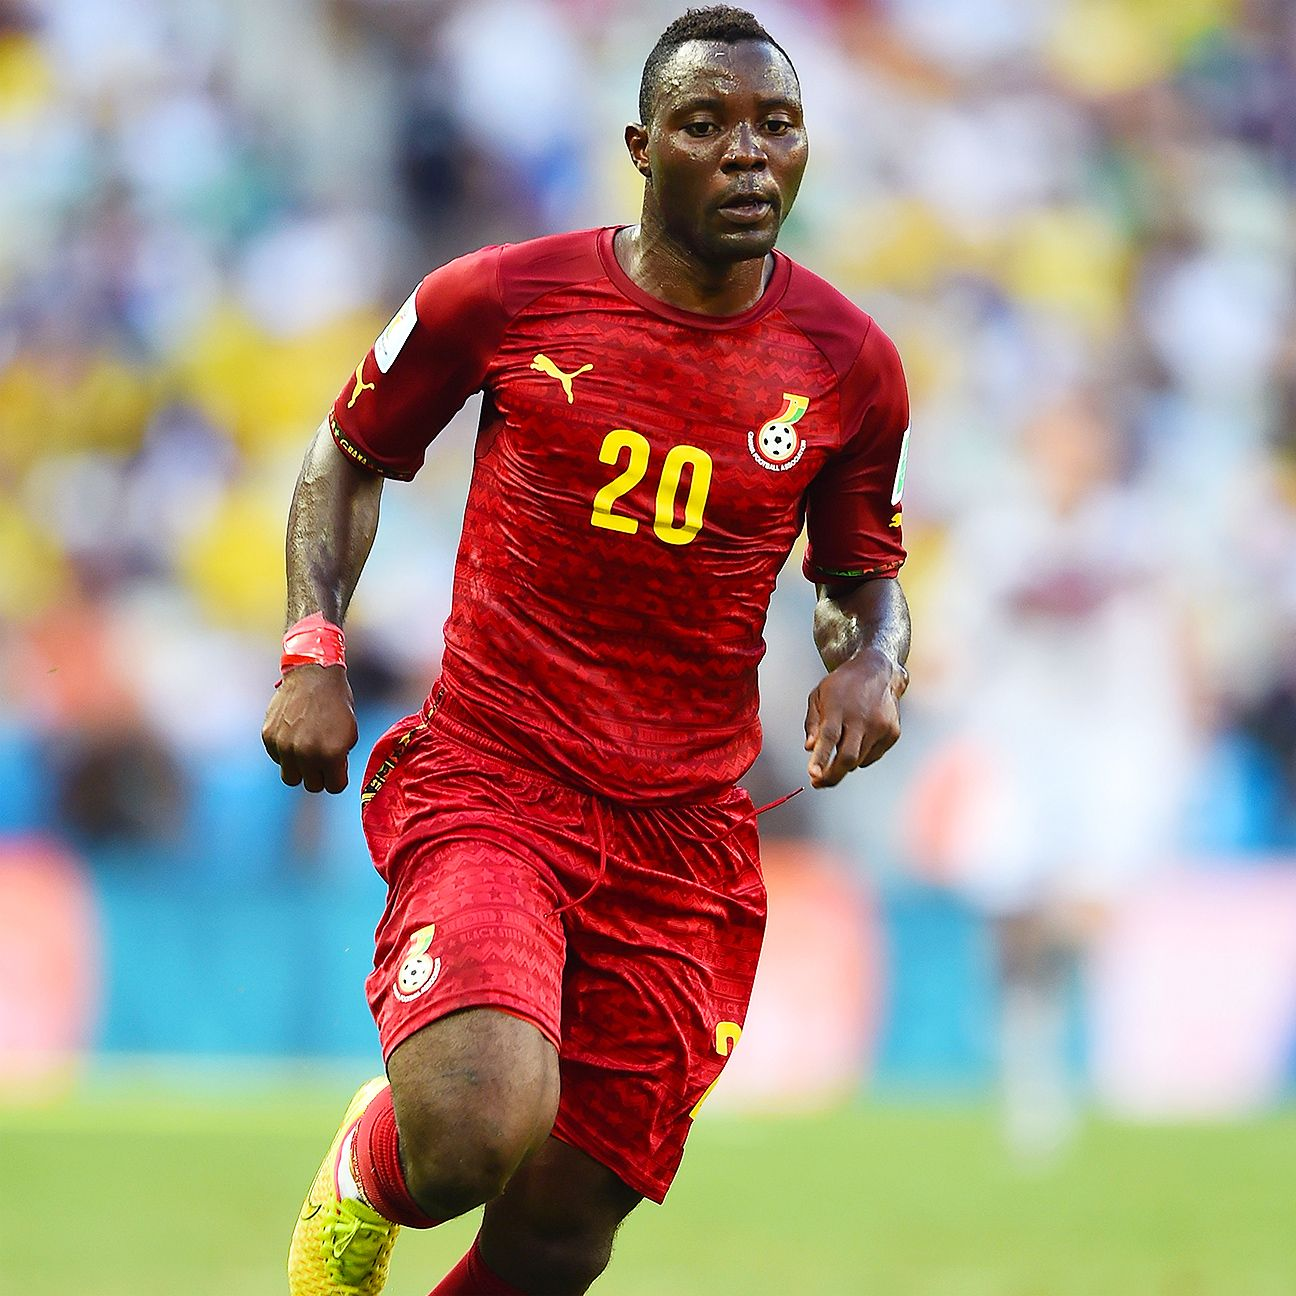 Ghana's Kwadwo Asamoah before his self-imposed international exile